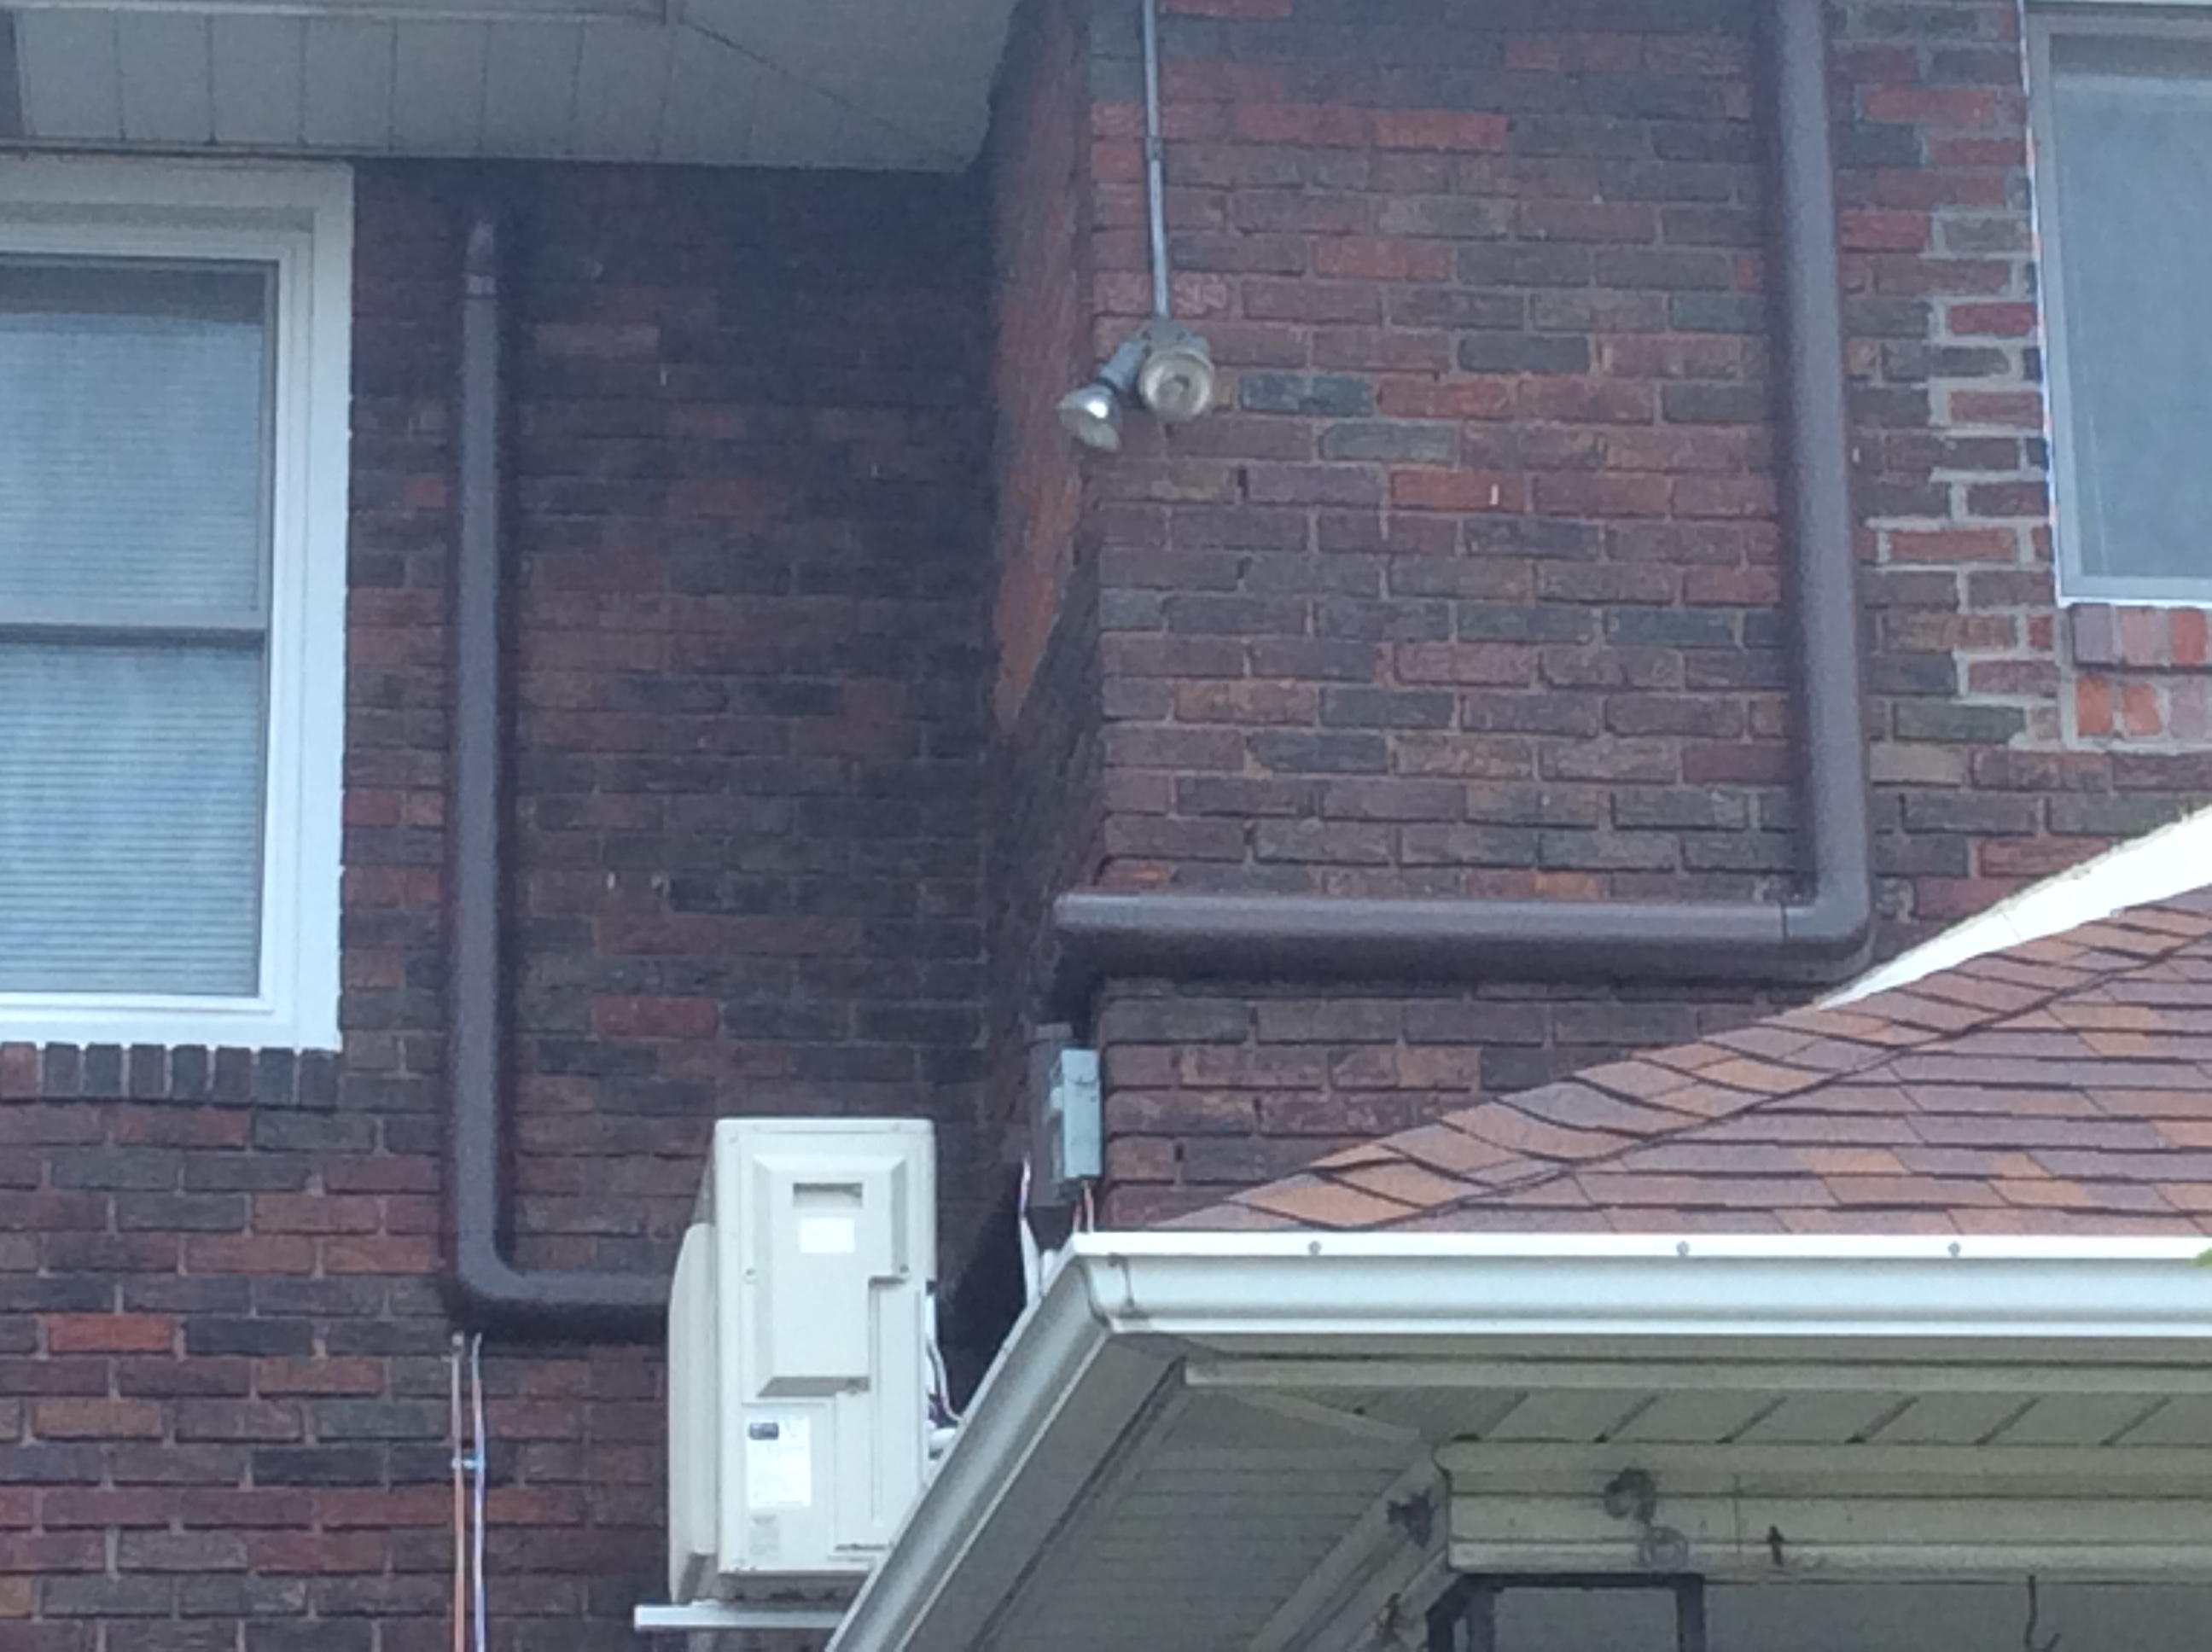 An air conditioning system installed outside of a brick home for the top floor of a duplex in Pittsburgh, Pennsylvania.